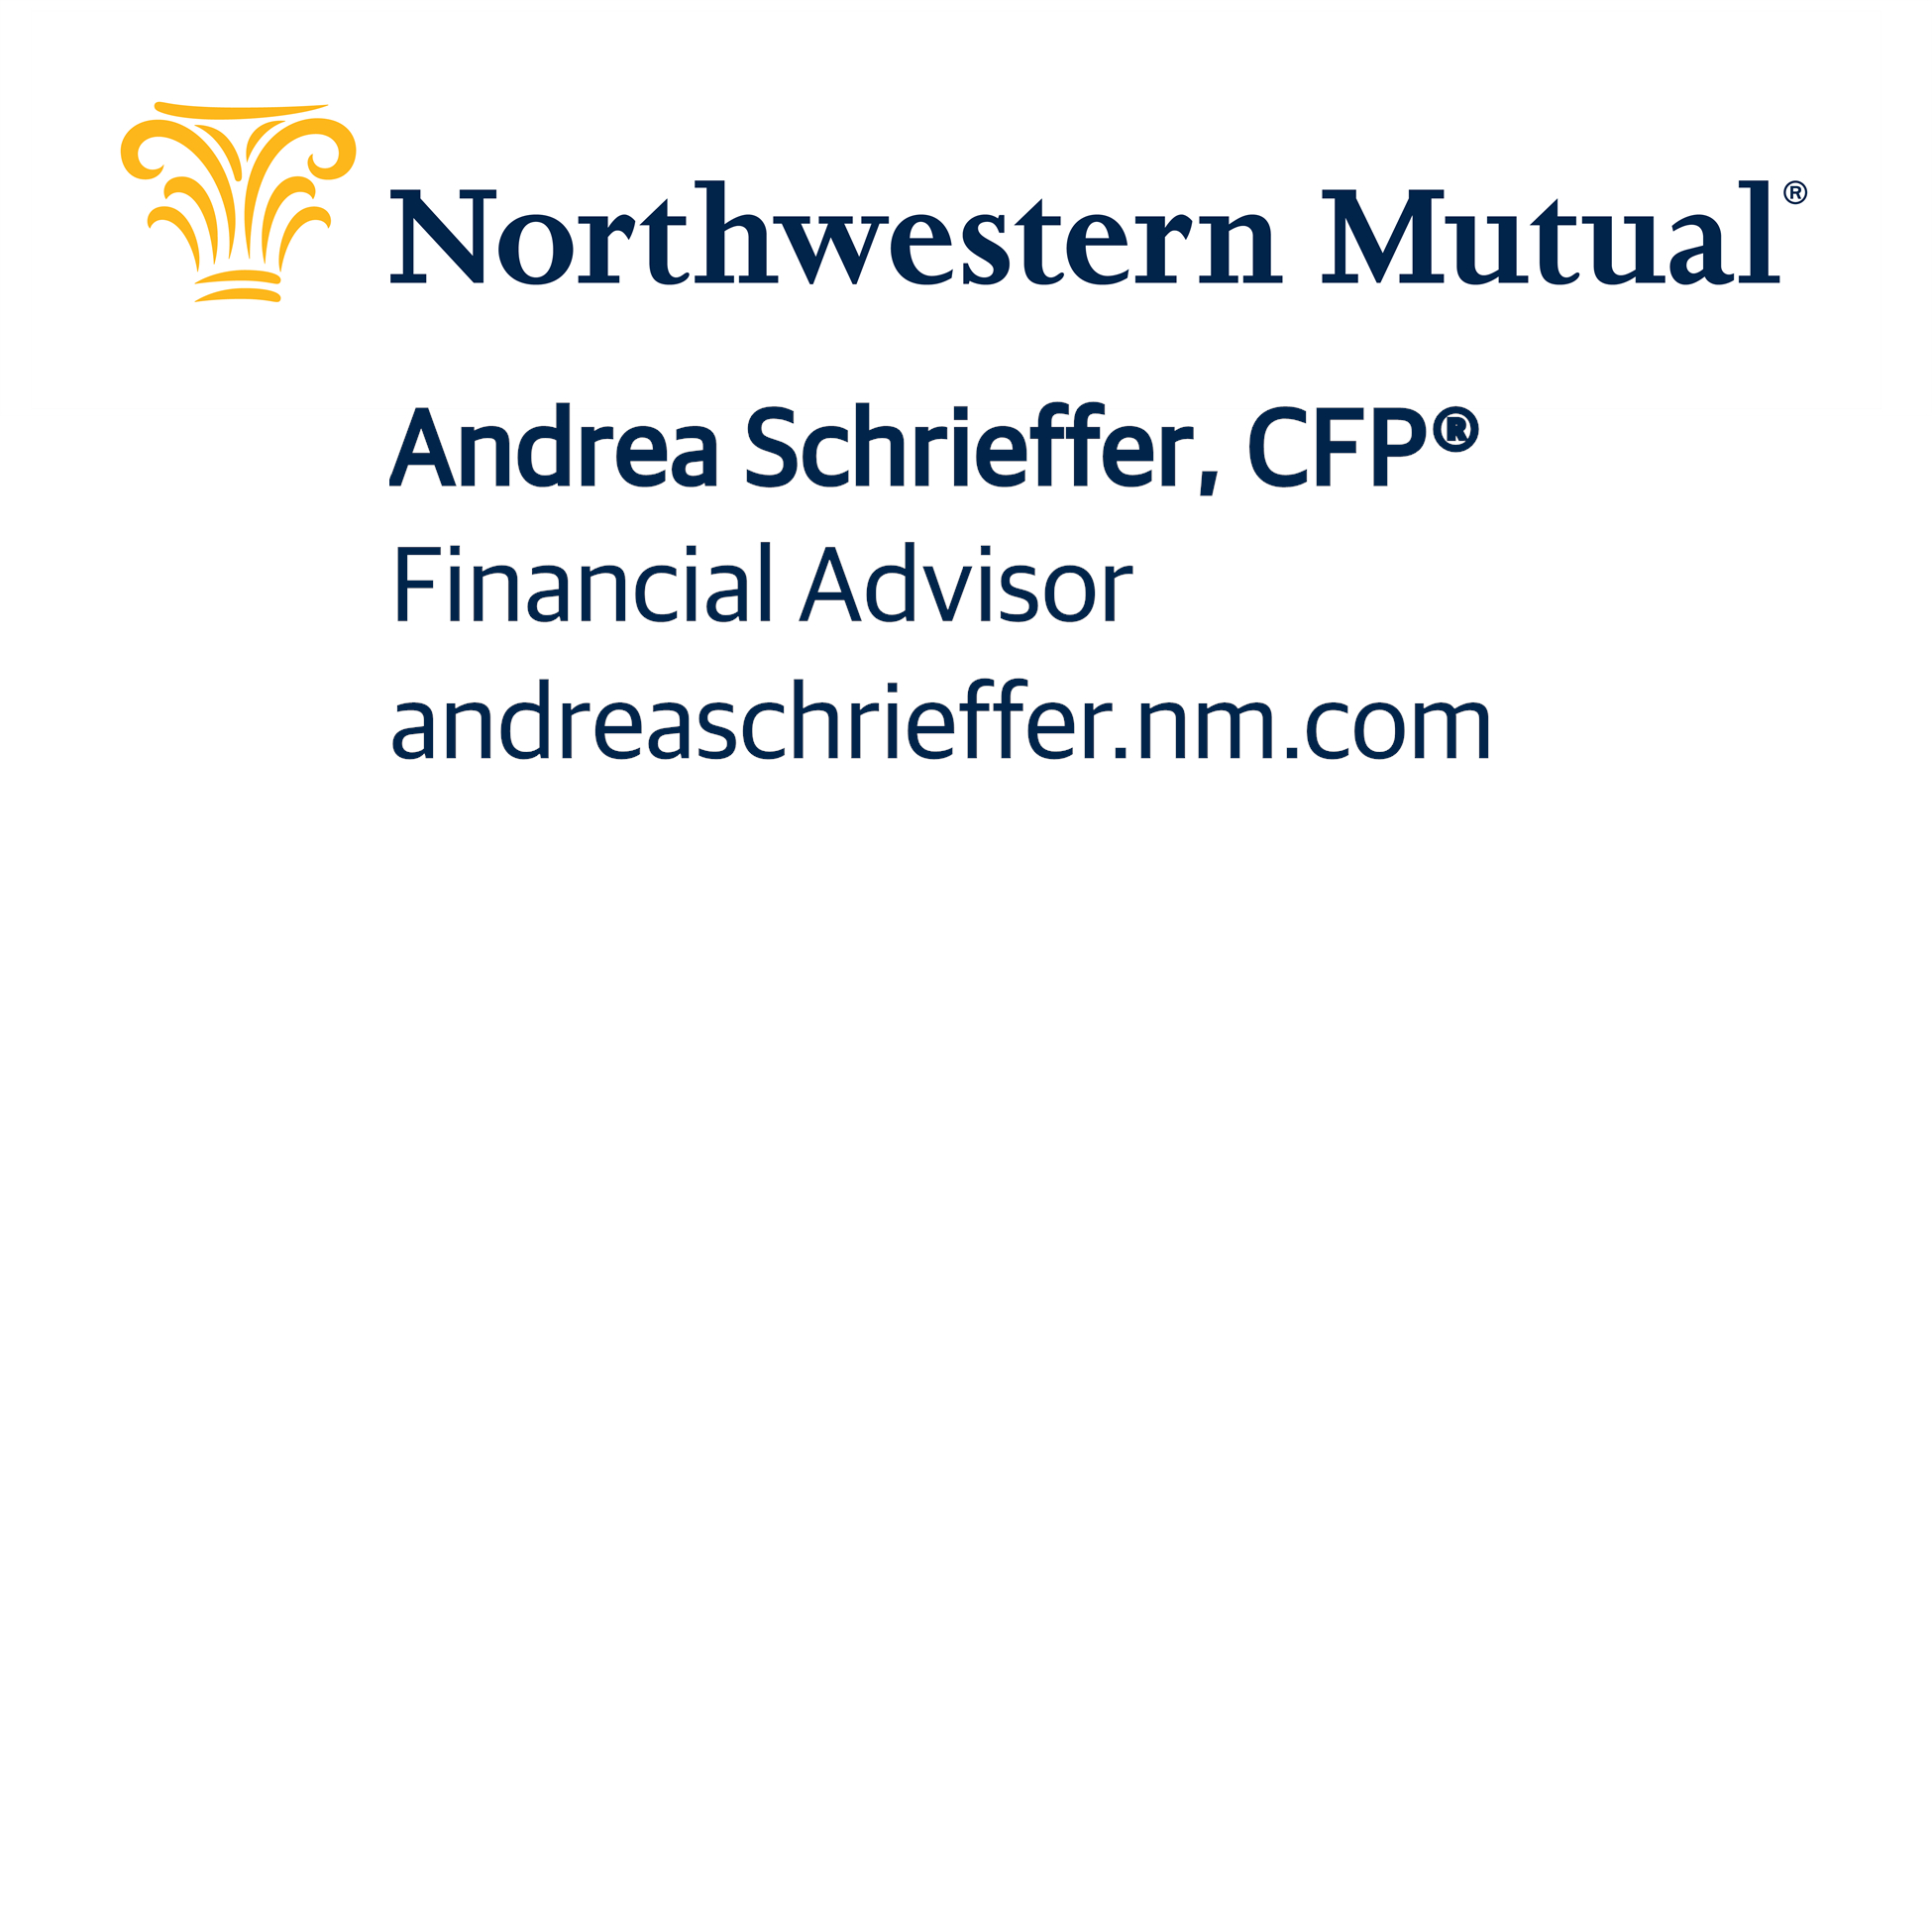 Connect with Andrea Schrieffer